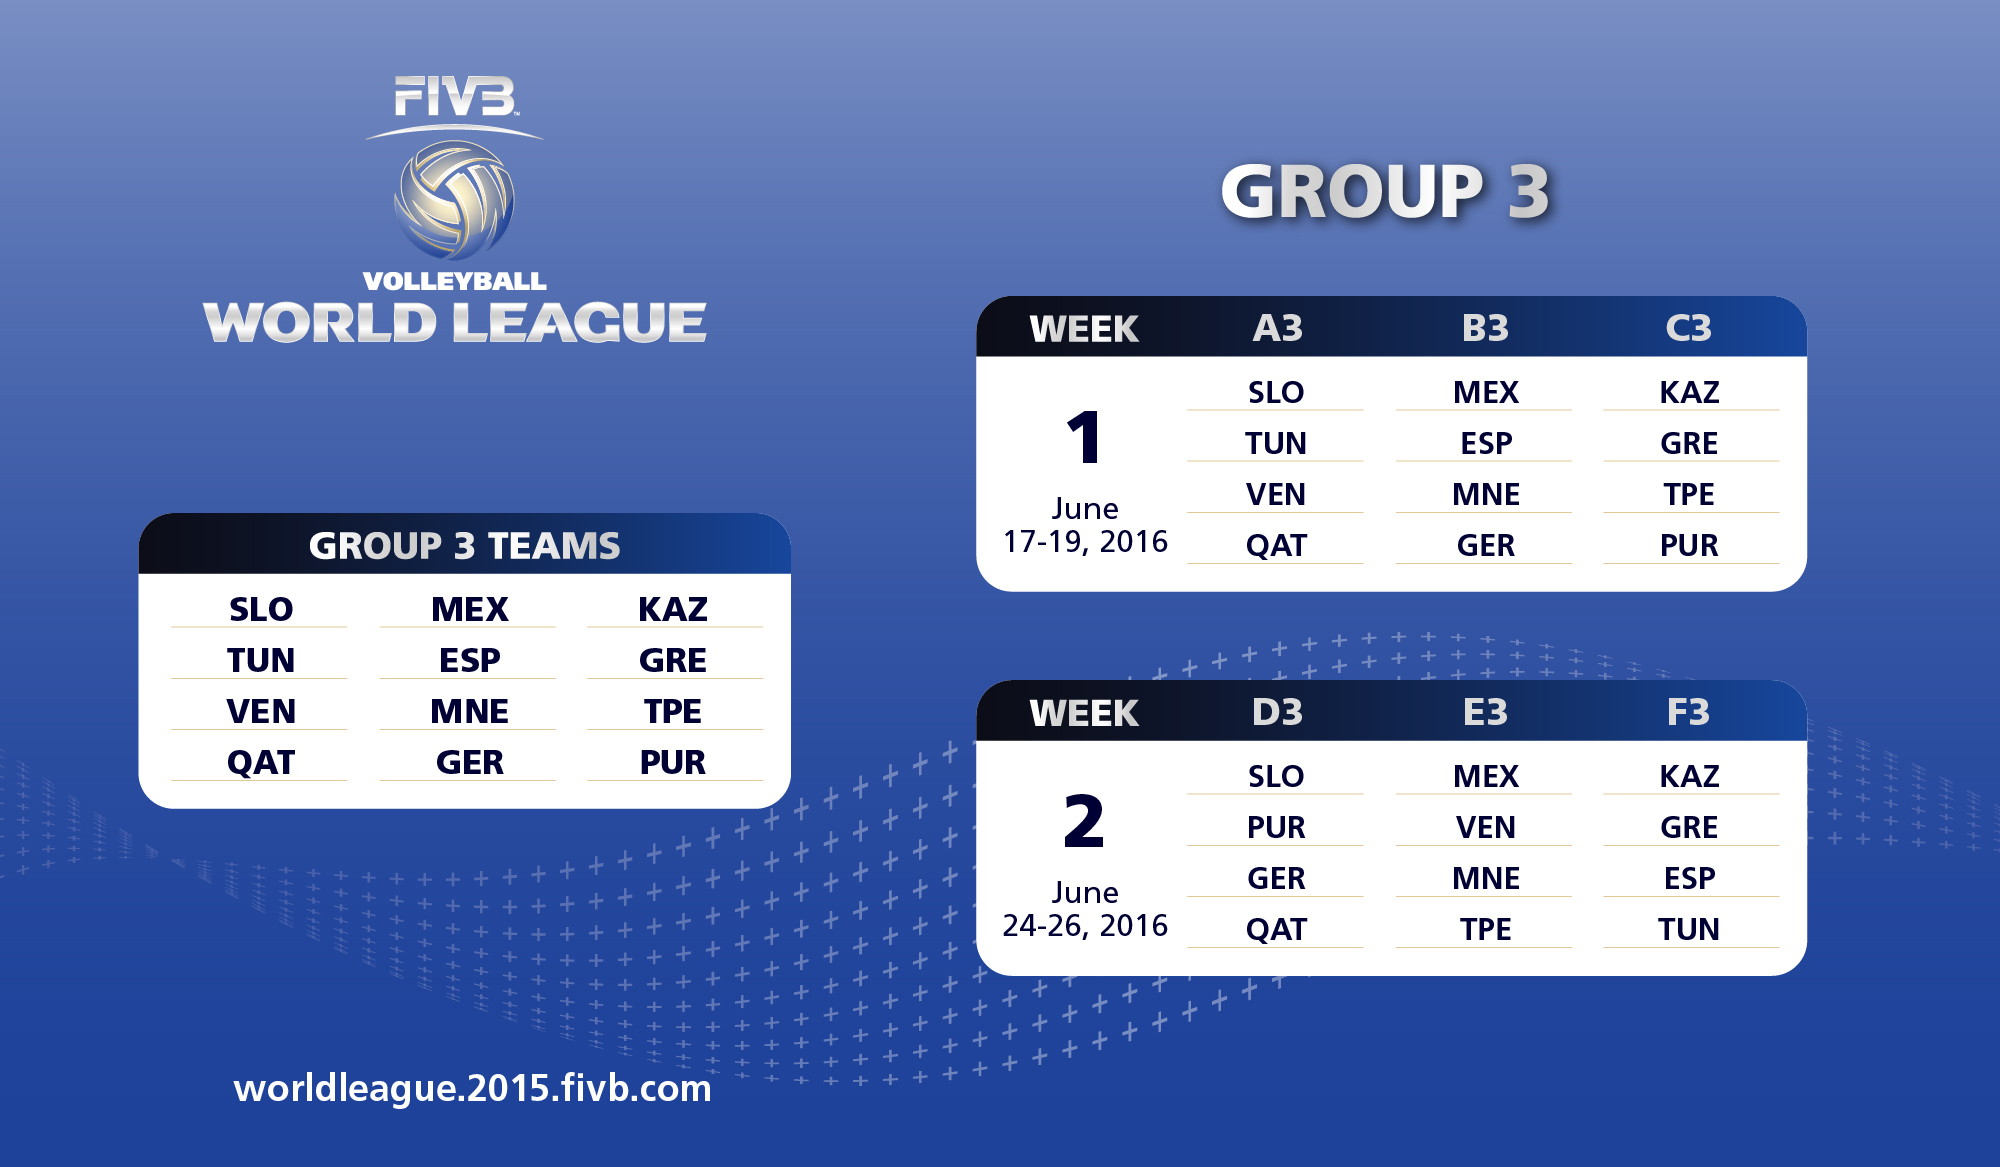 World League Group 3